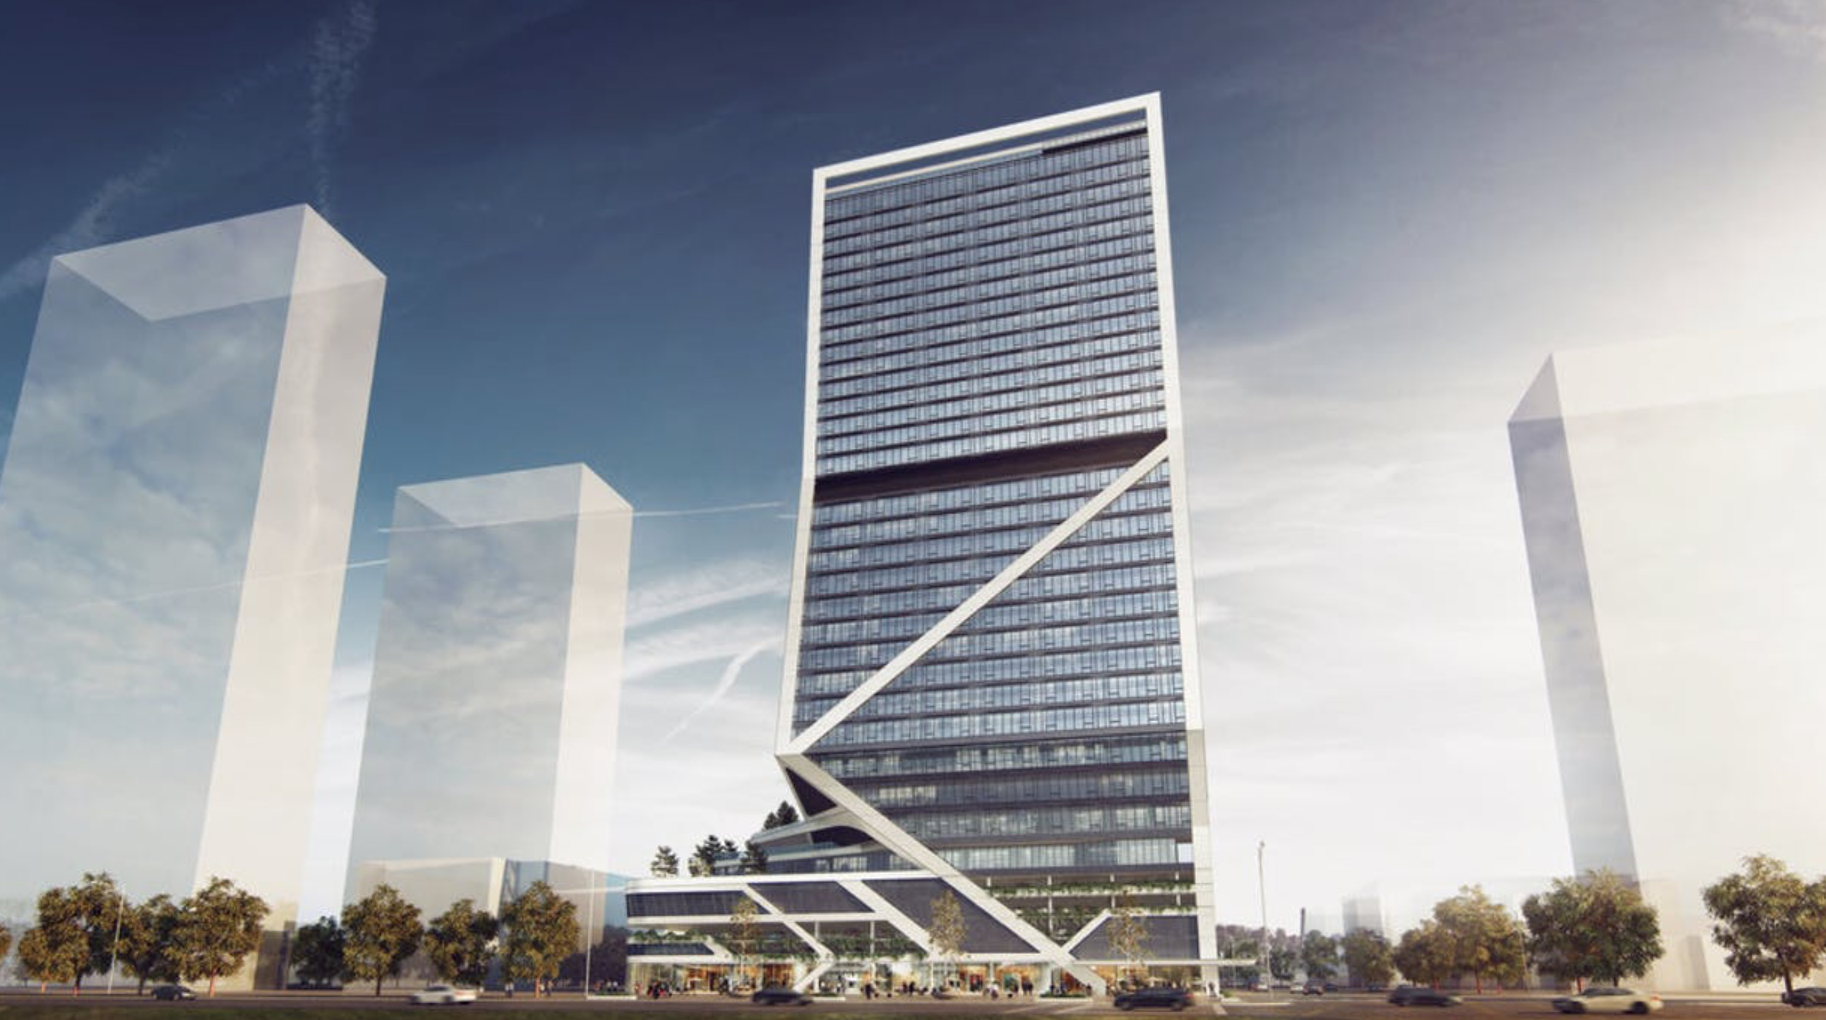 New Rendering of Miami Station. Designed by ODP Architecture & Design.